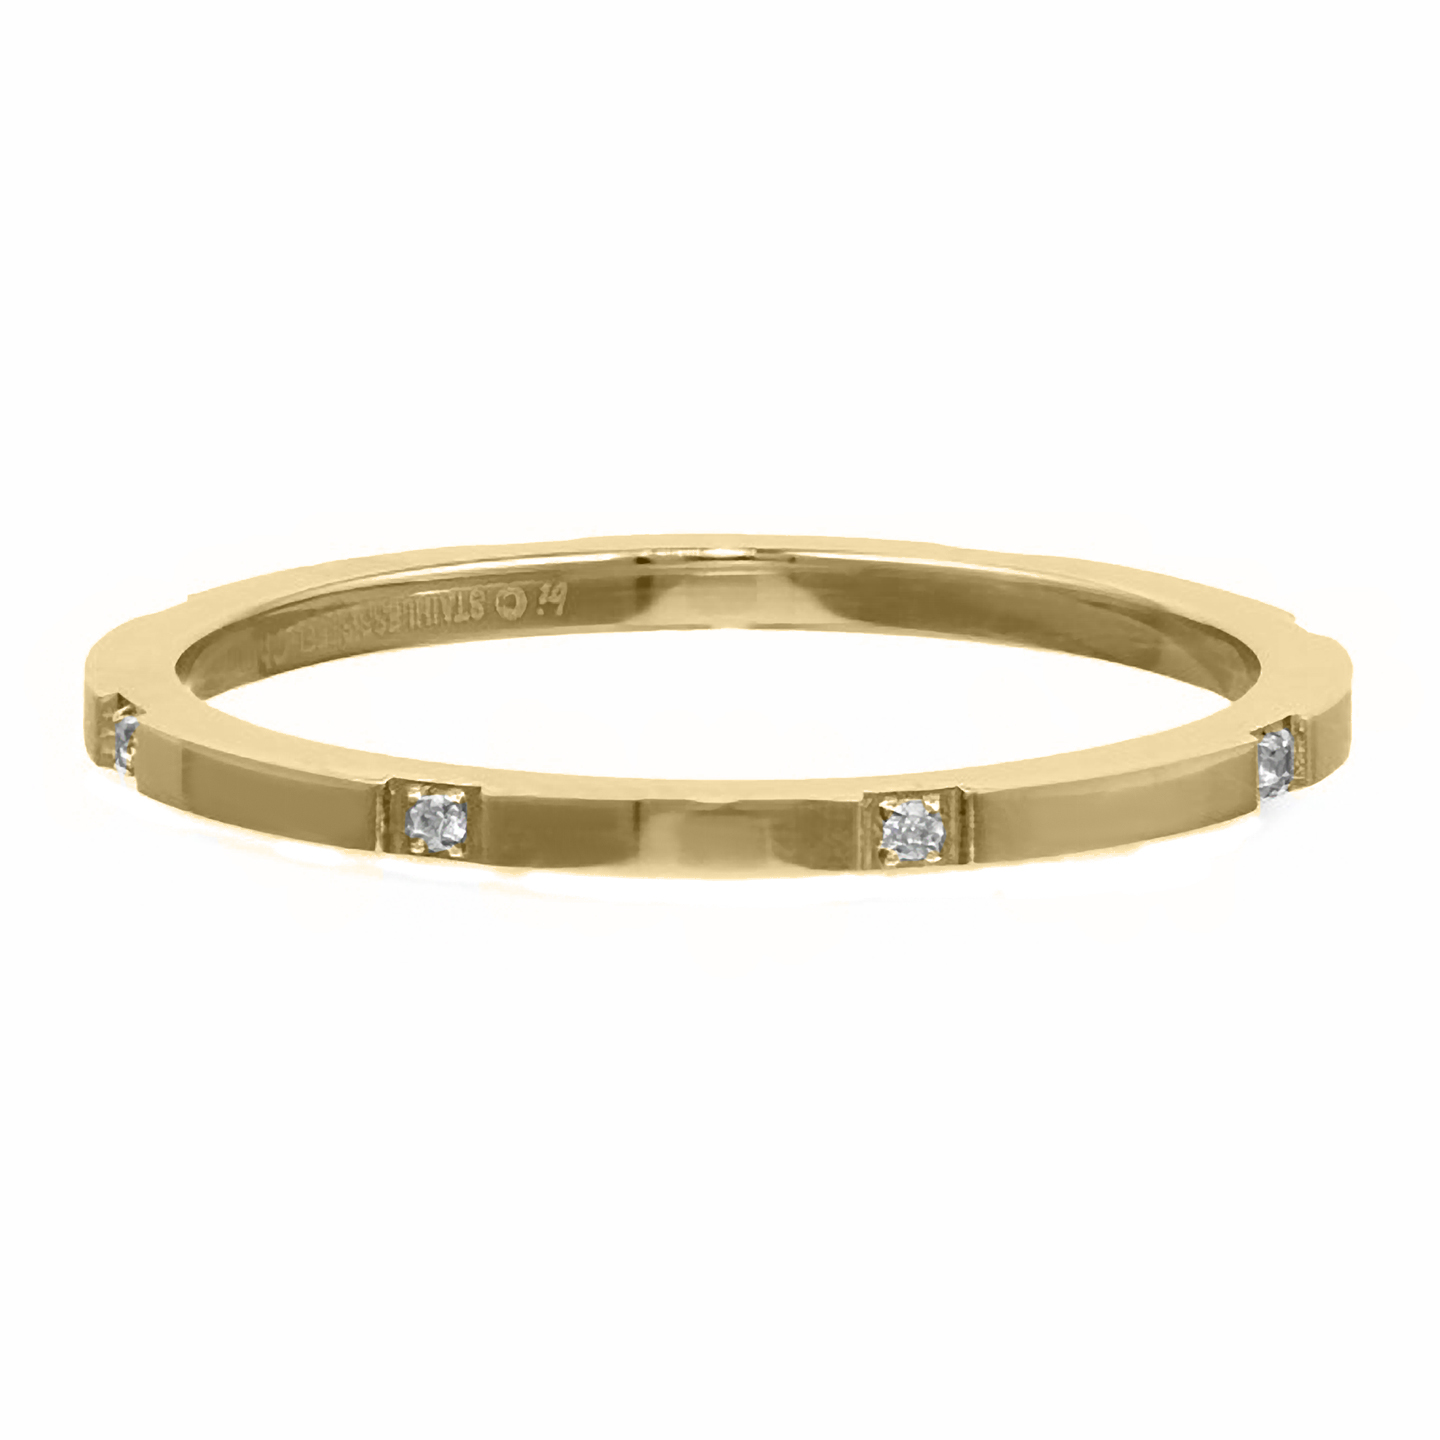 Metro Jewelry Stainless Steel Thin Ring with Gold Ion Plating and Cubic Zirconium